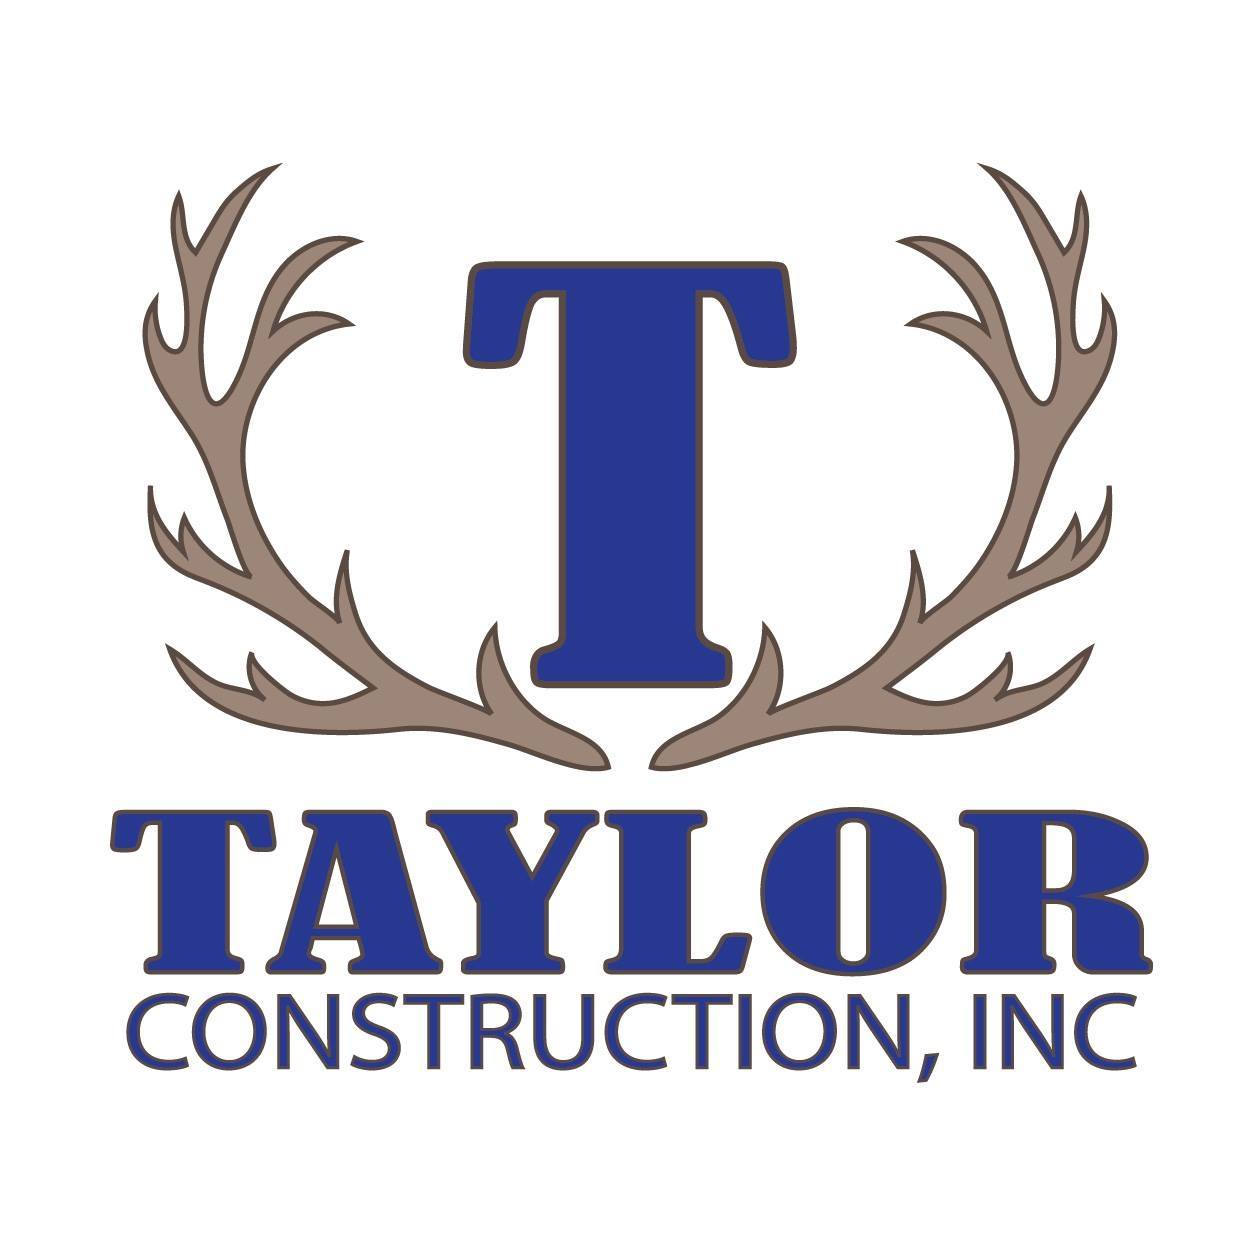 Business logo of Taylor Construction, Inc